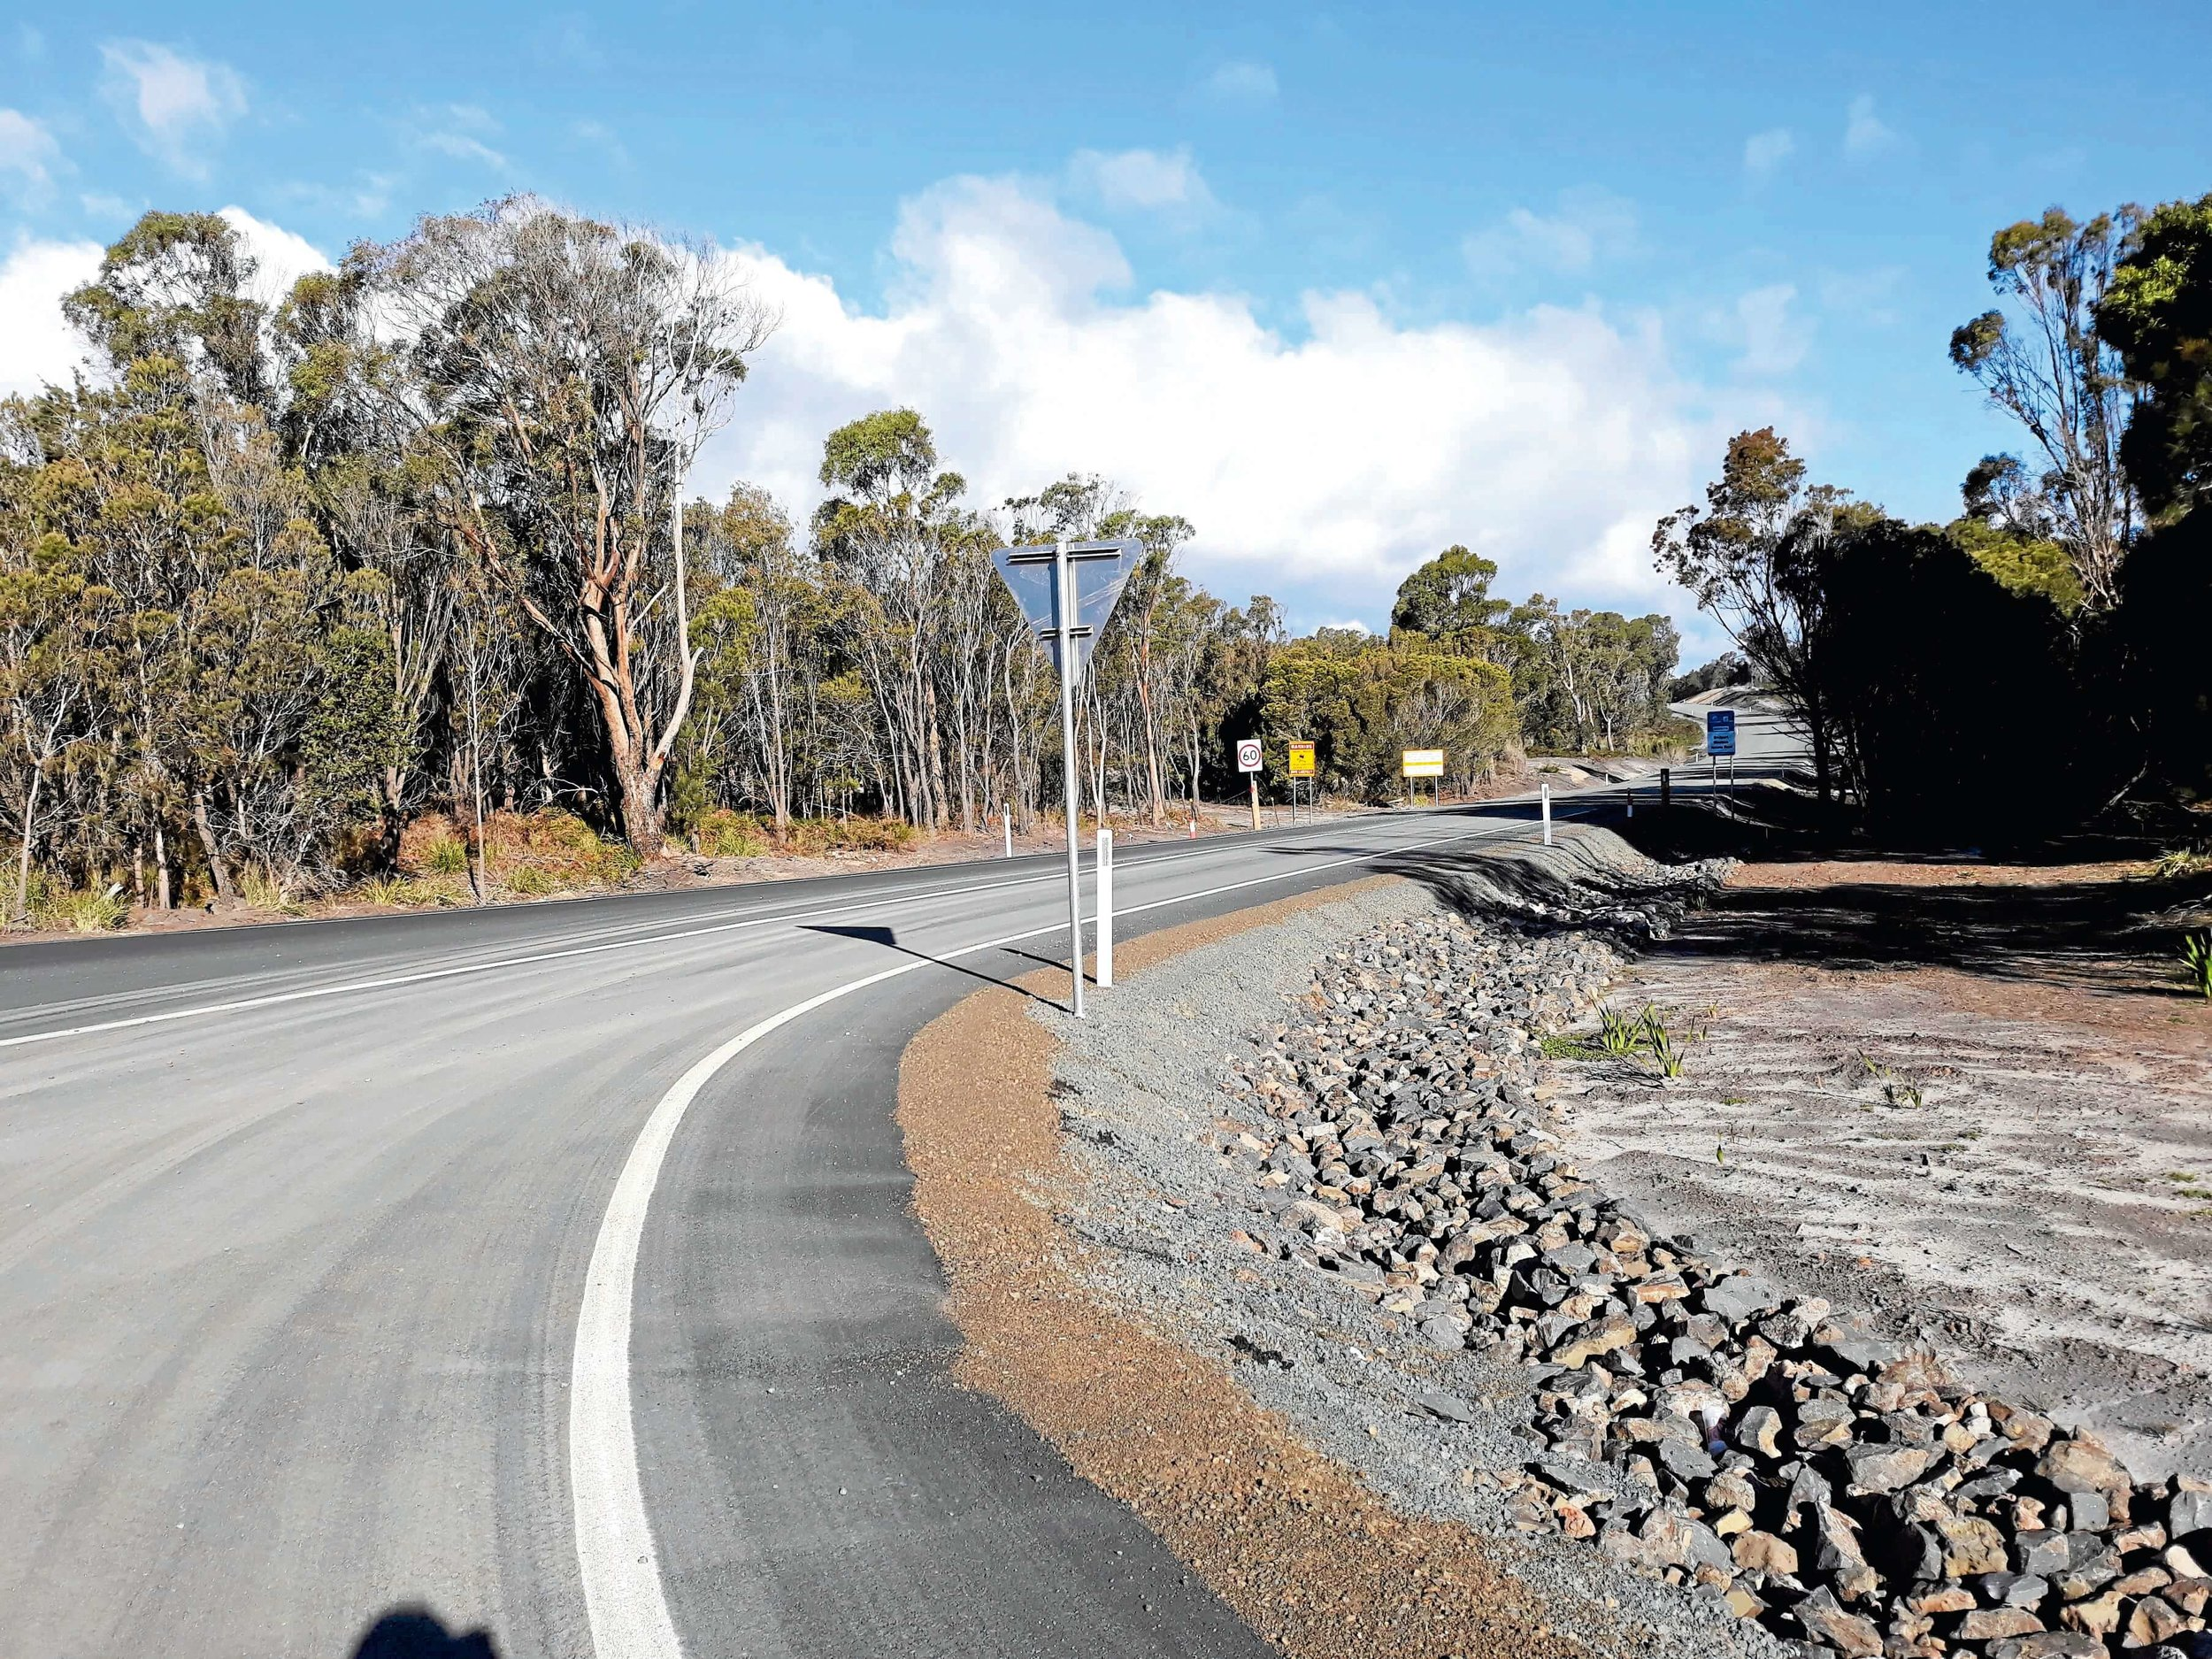 • The council has proposed to name the Bridport western access road in honour of the late Barry Jarvis.